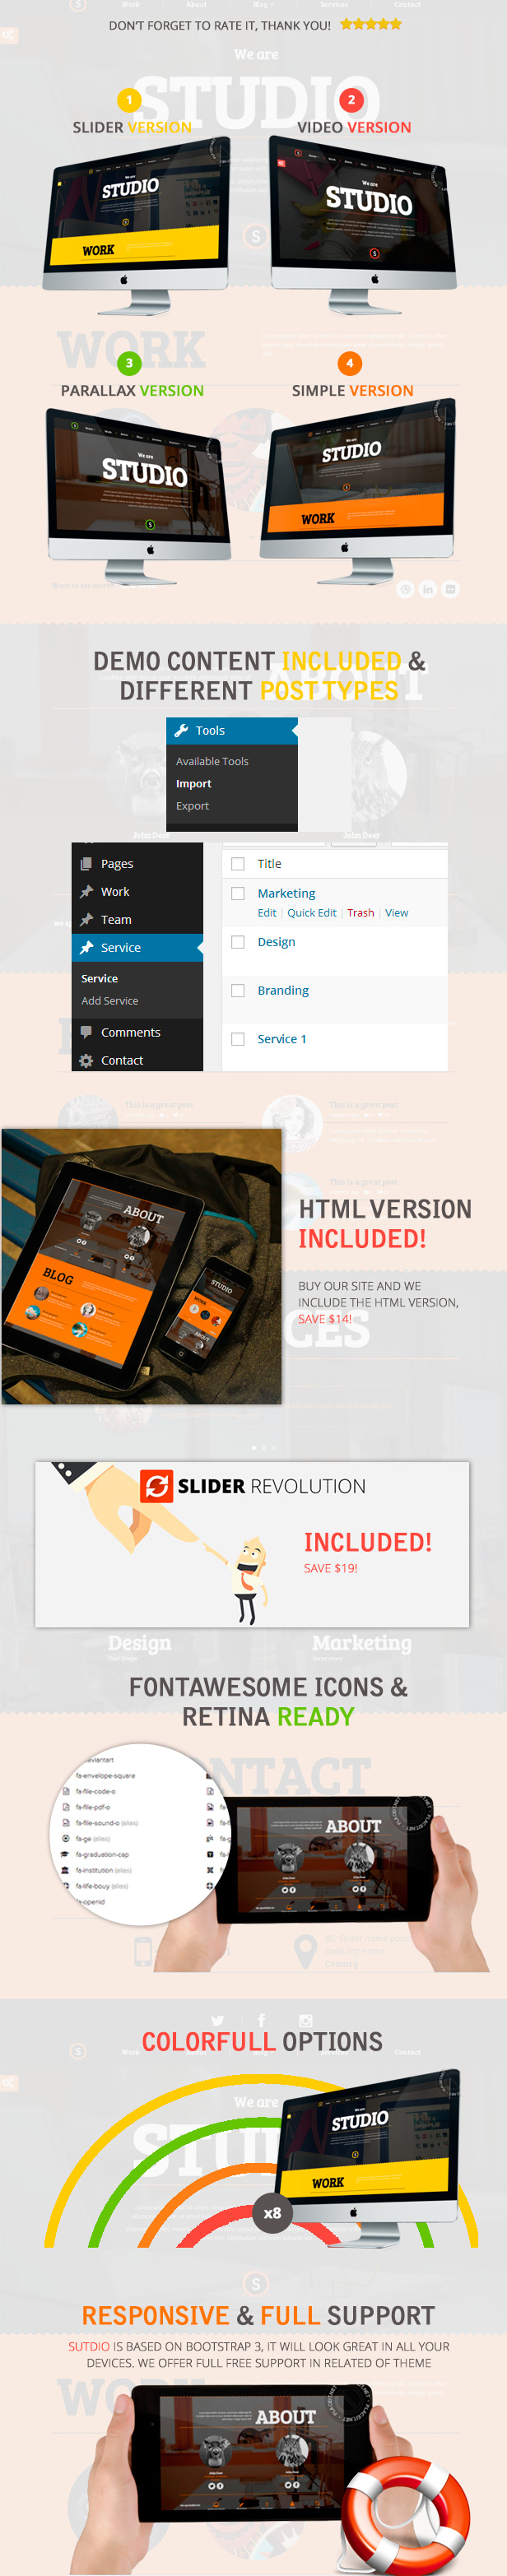 Studio - Multipurpose Software Technology WordPress Theme